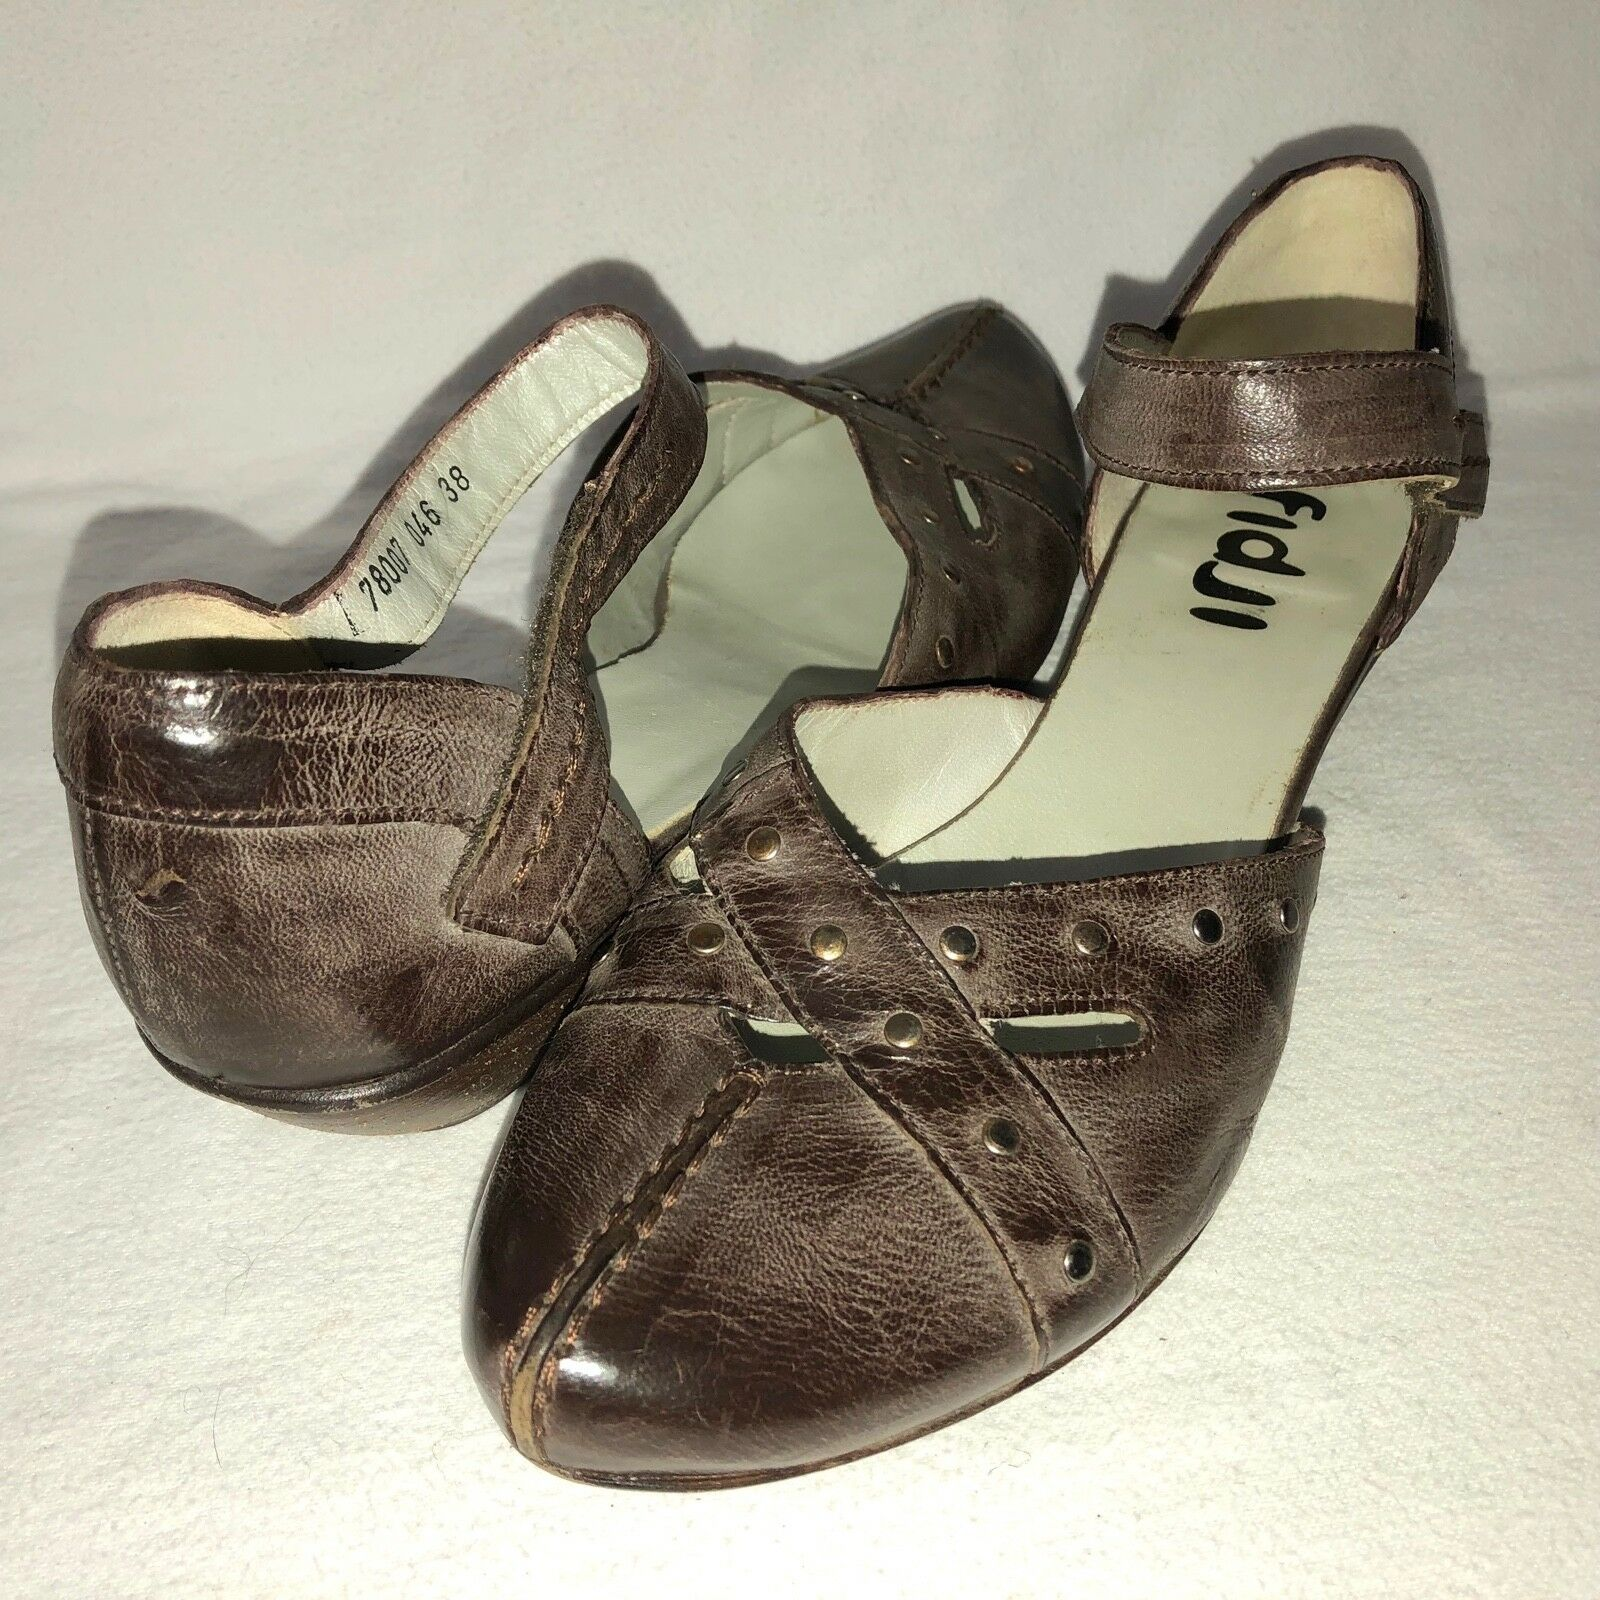 Fidji Women's 38 US 7.5 Brown Antiqued Leather Stud Detail Ankle Strap Low Heels